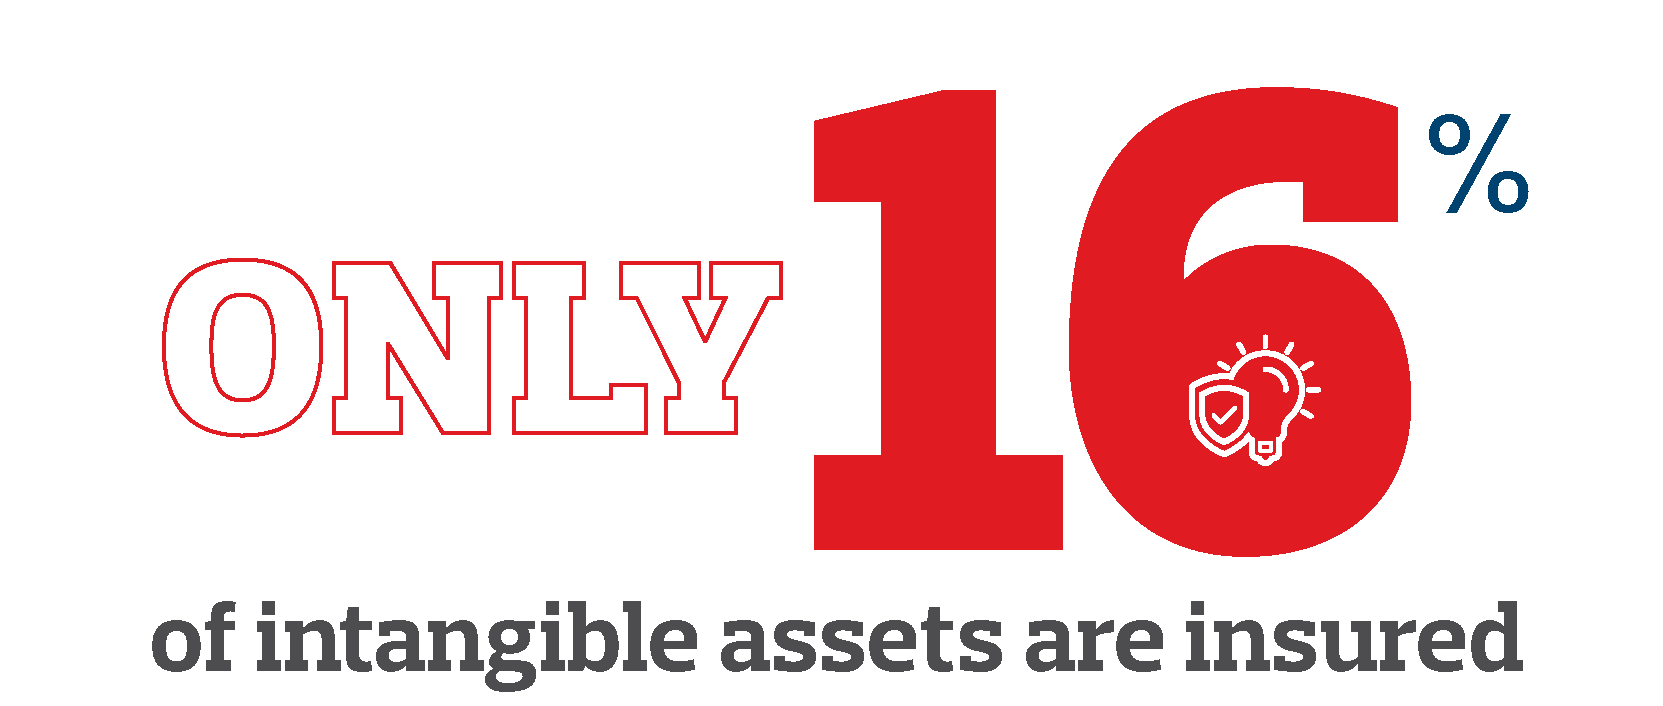 16% intangible assets insured against potential loss